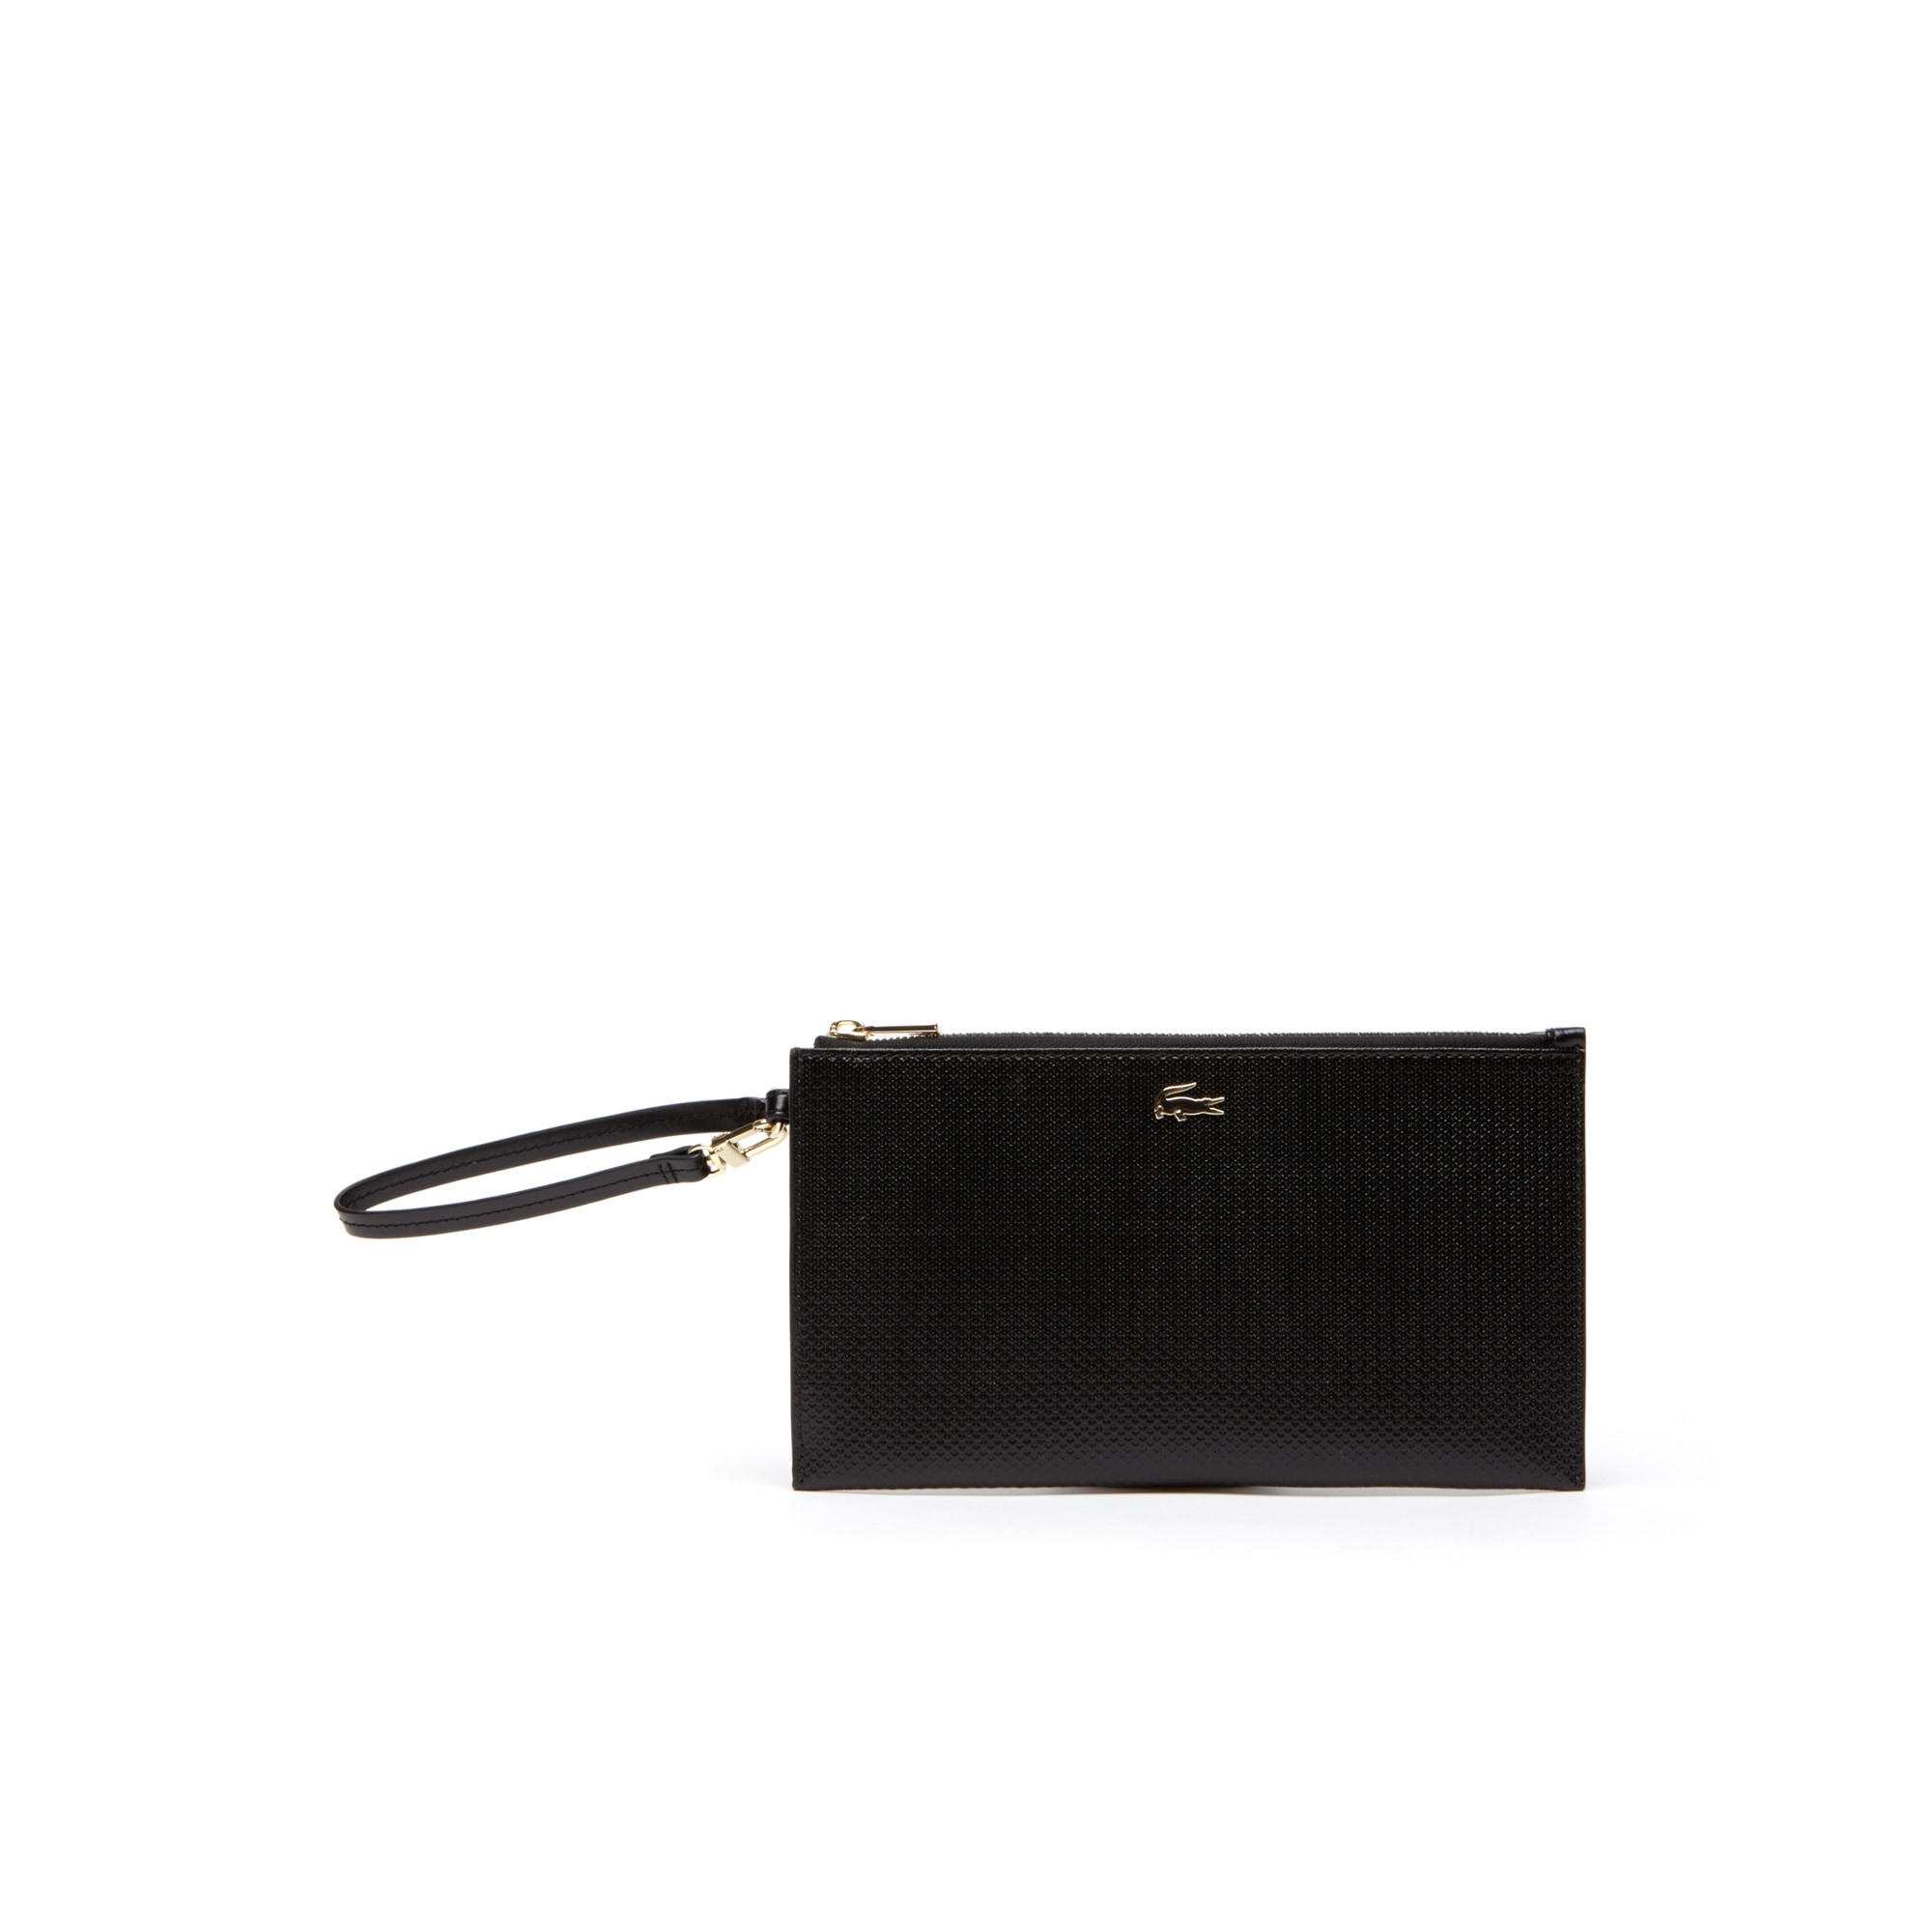 라코스테 Lacoste Womens Chantaco Pique Leather Zip Pouch,black